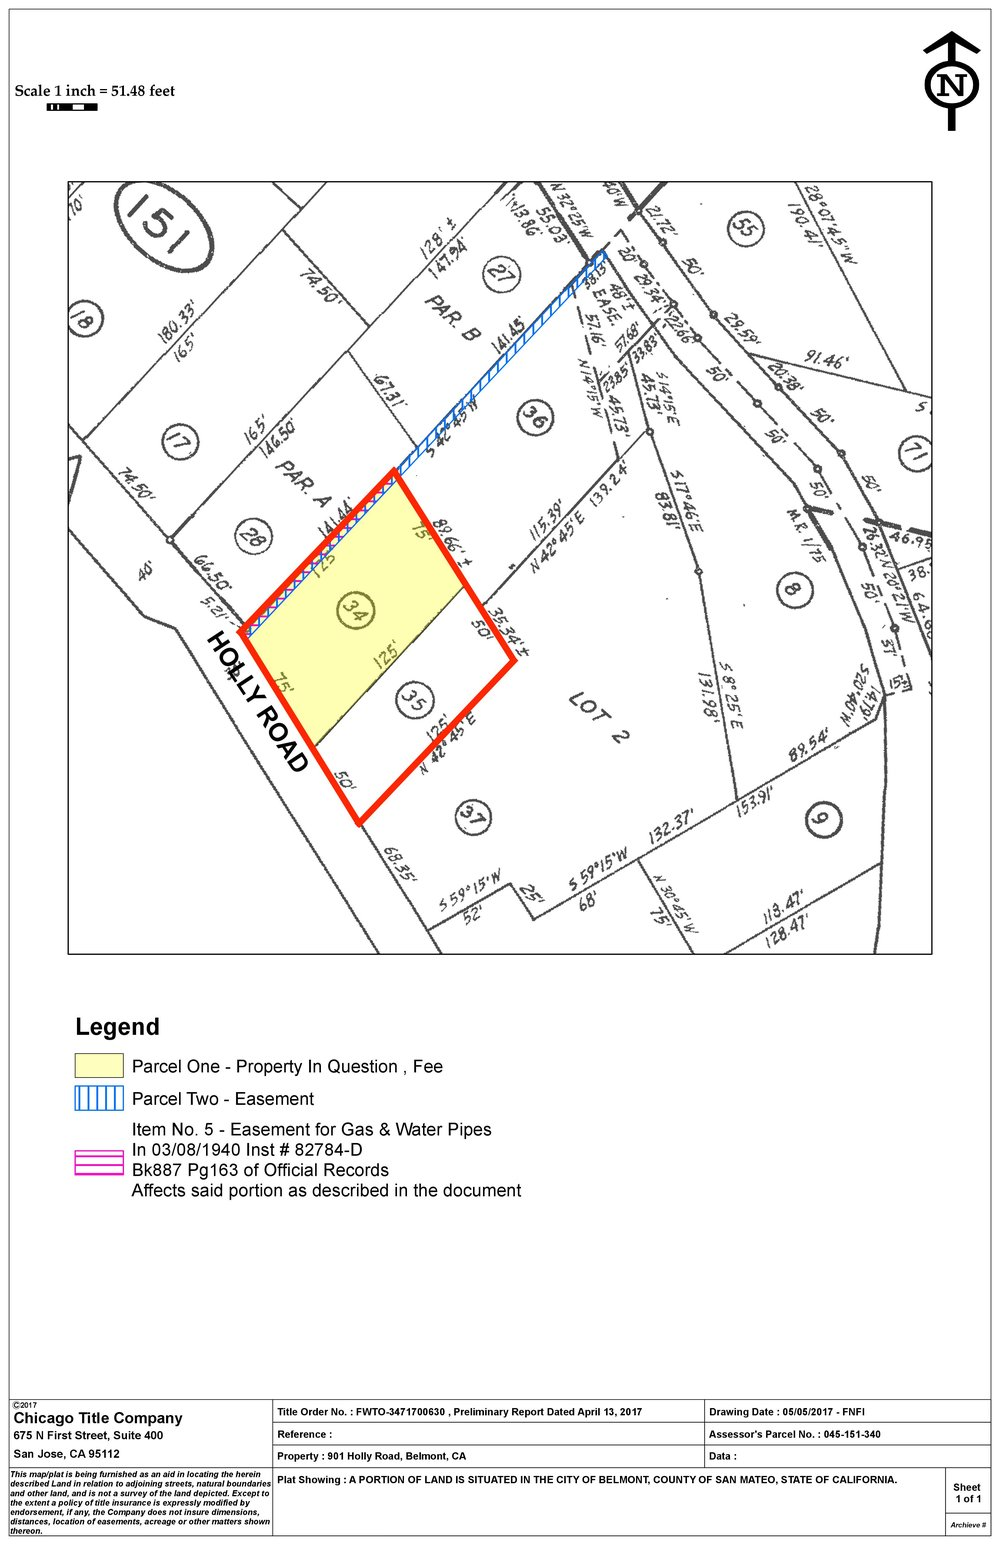 *click to enlarge. Property boundaries have not been surveyed, buyers encouraged to investigate development potential with the Belmont Building and Planning Dept.